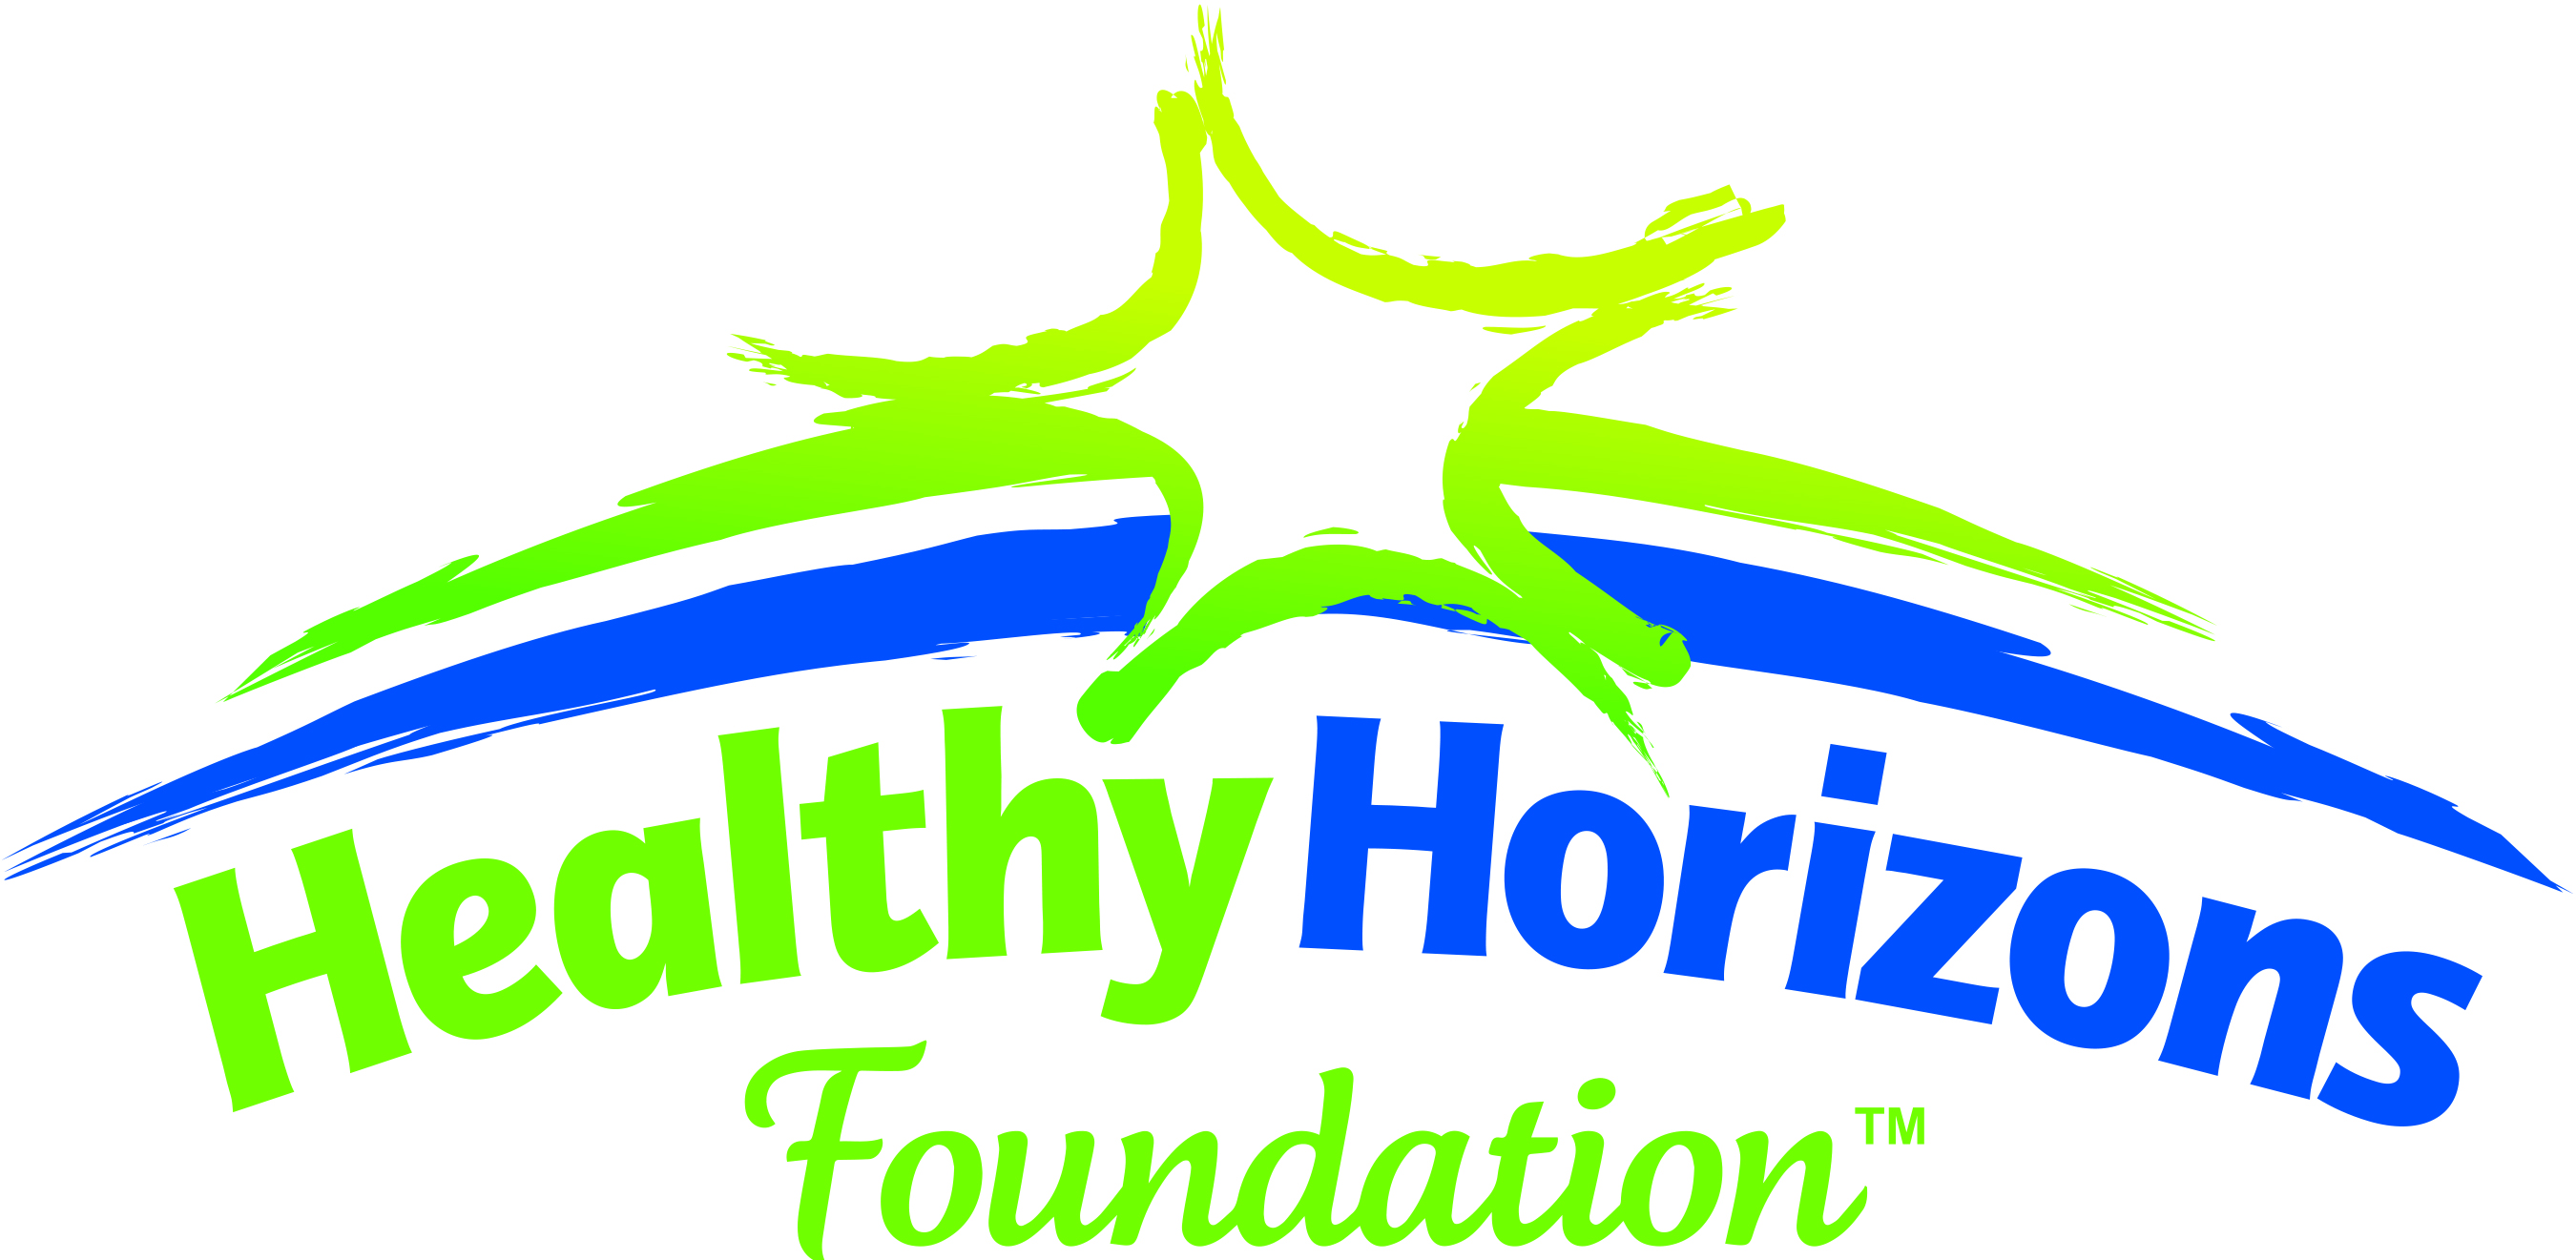 Healthy Horizons Foundation Logo - Copy.jpg (1.56 MB)